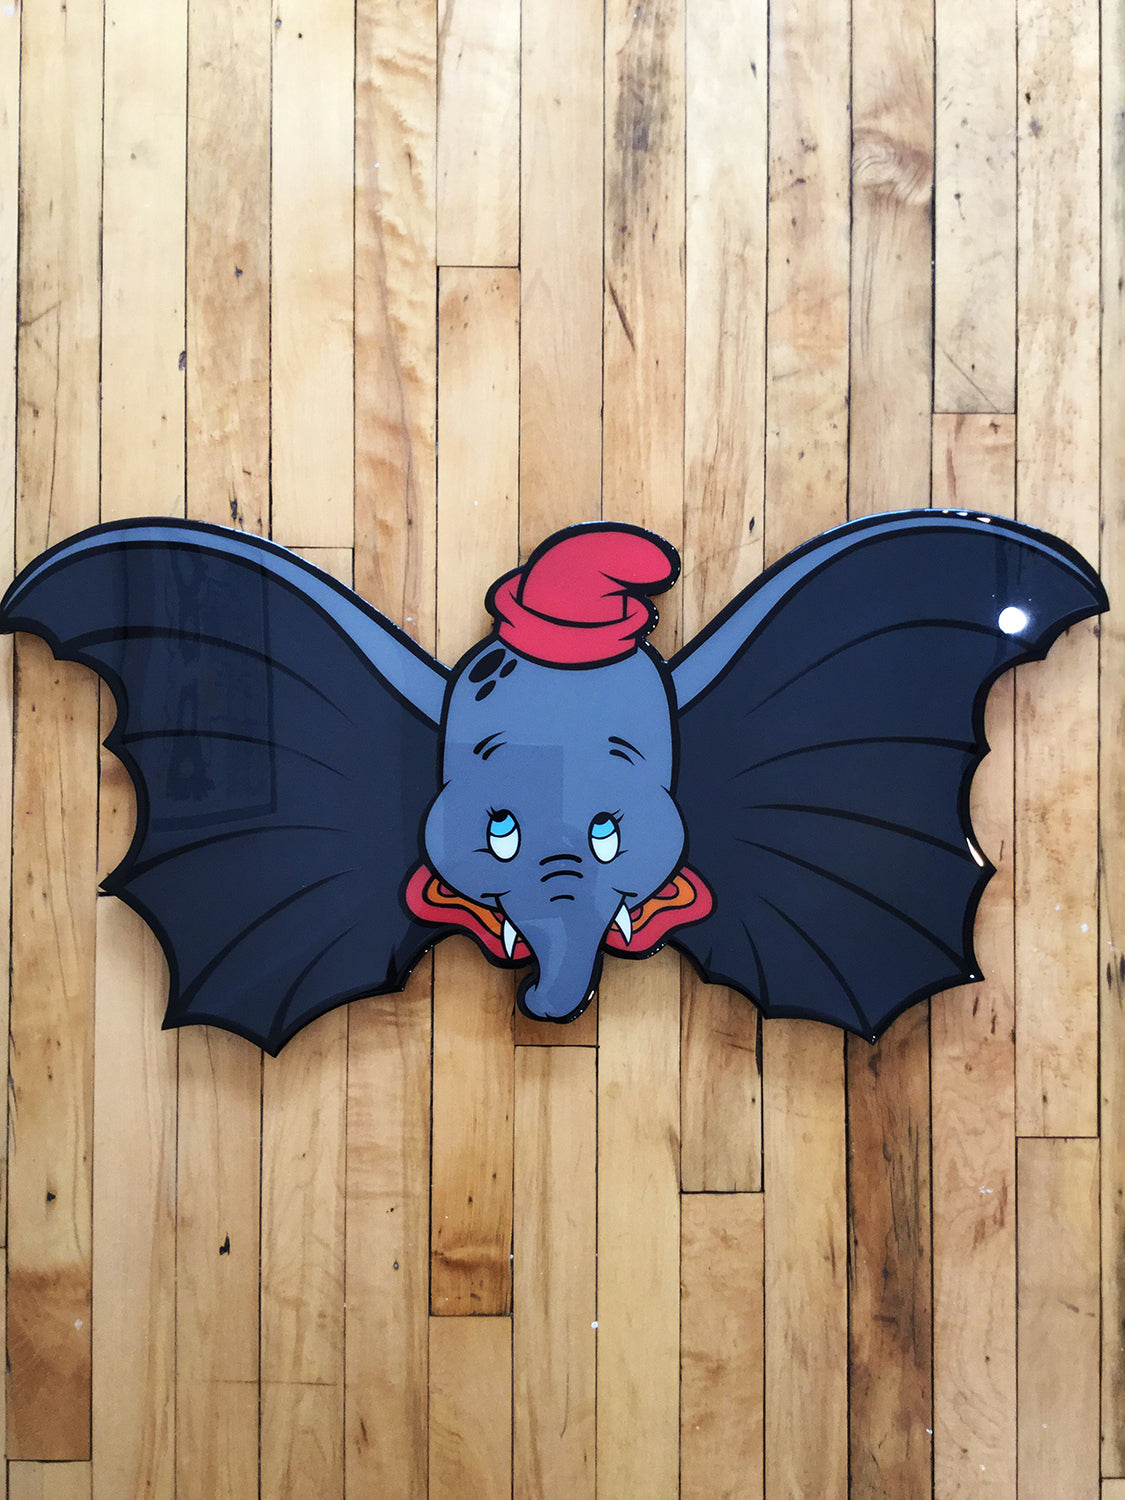 Dumbo Original Wood Cut by R6D4